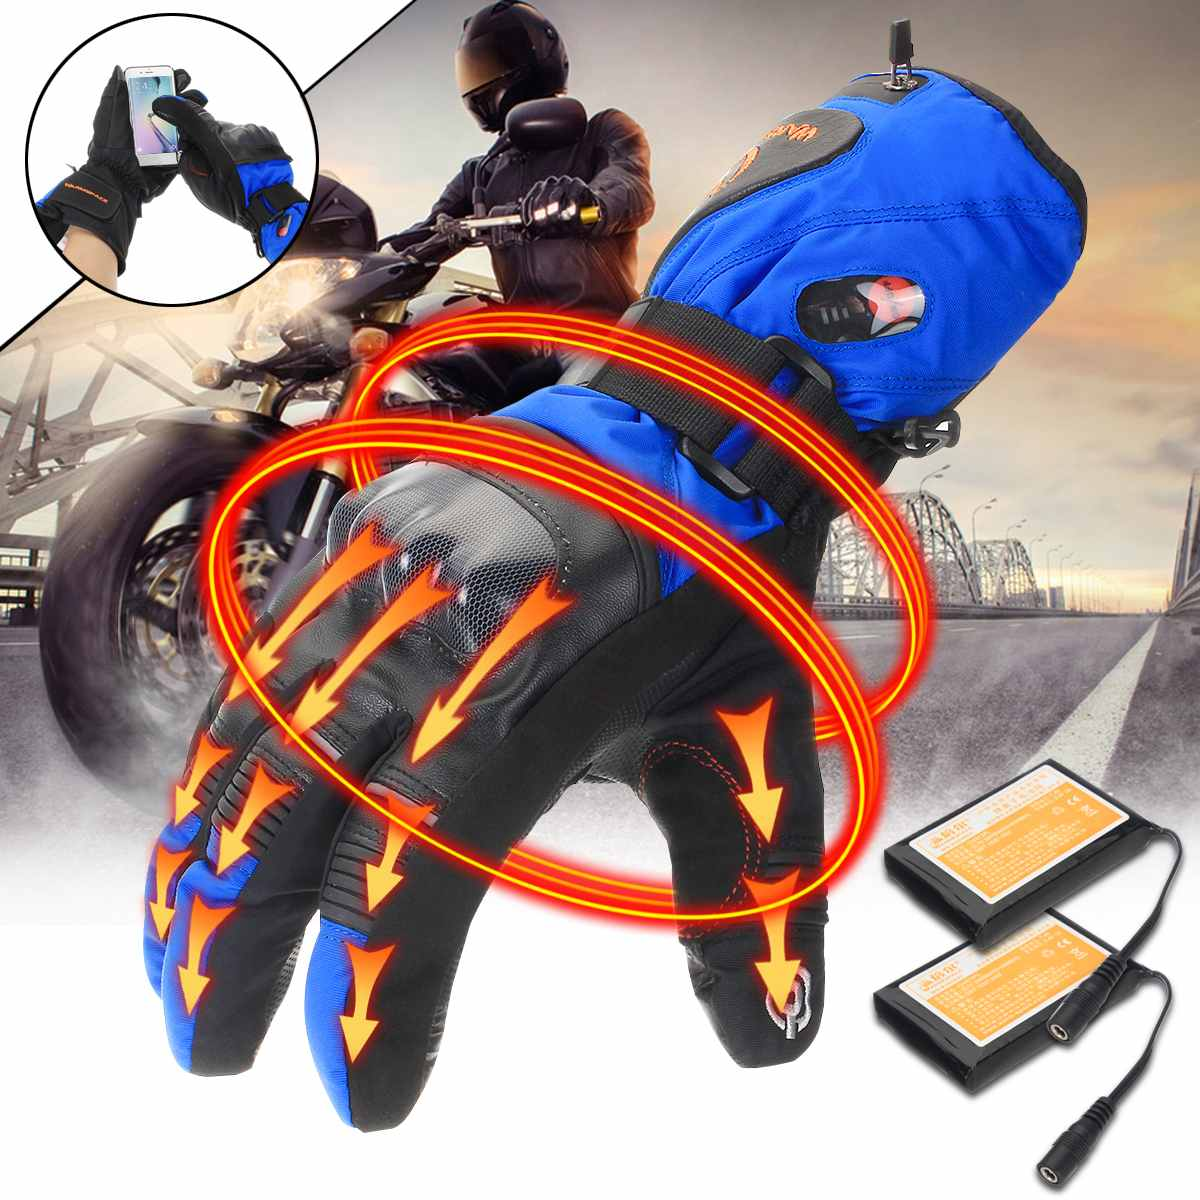 5600Mah Rechargeable Electric Gloves Heated Li Battery -2860